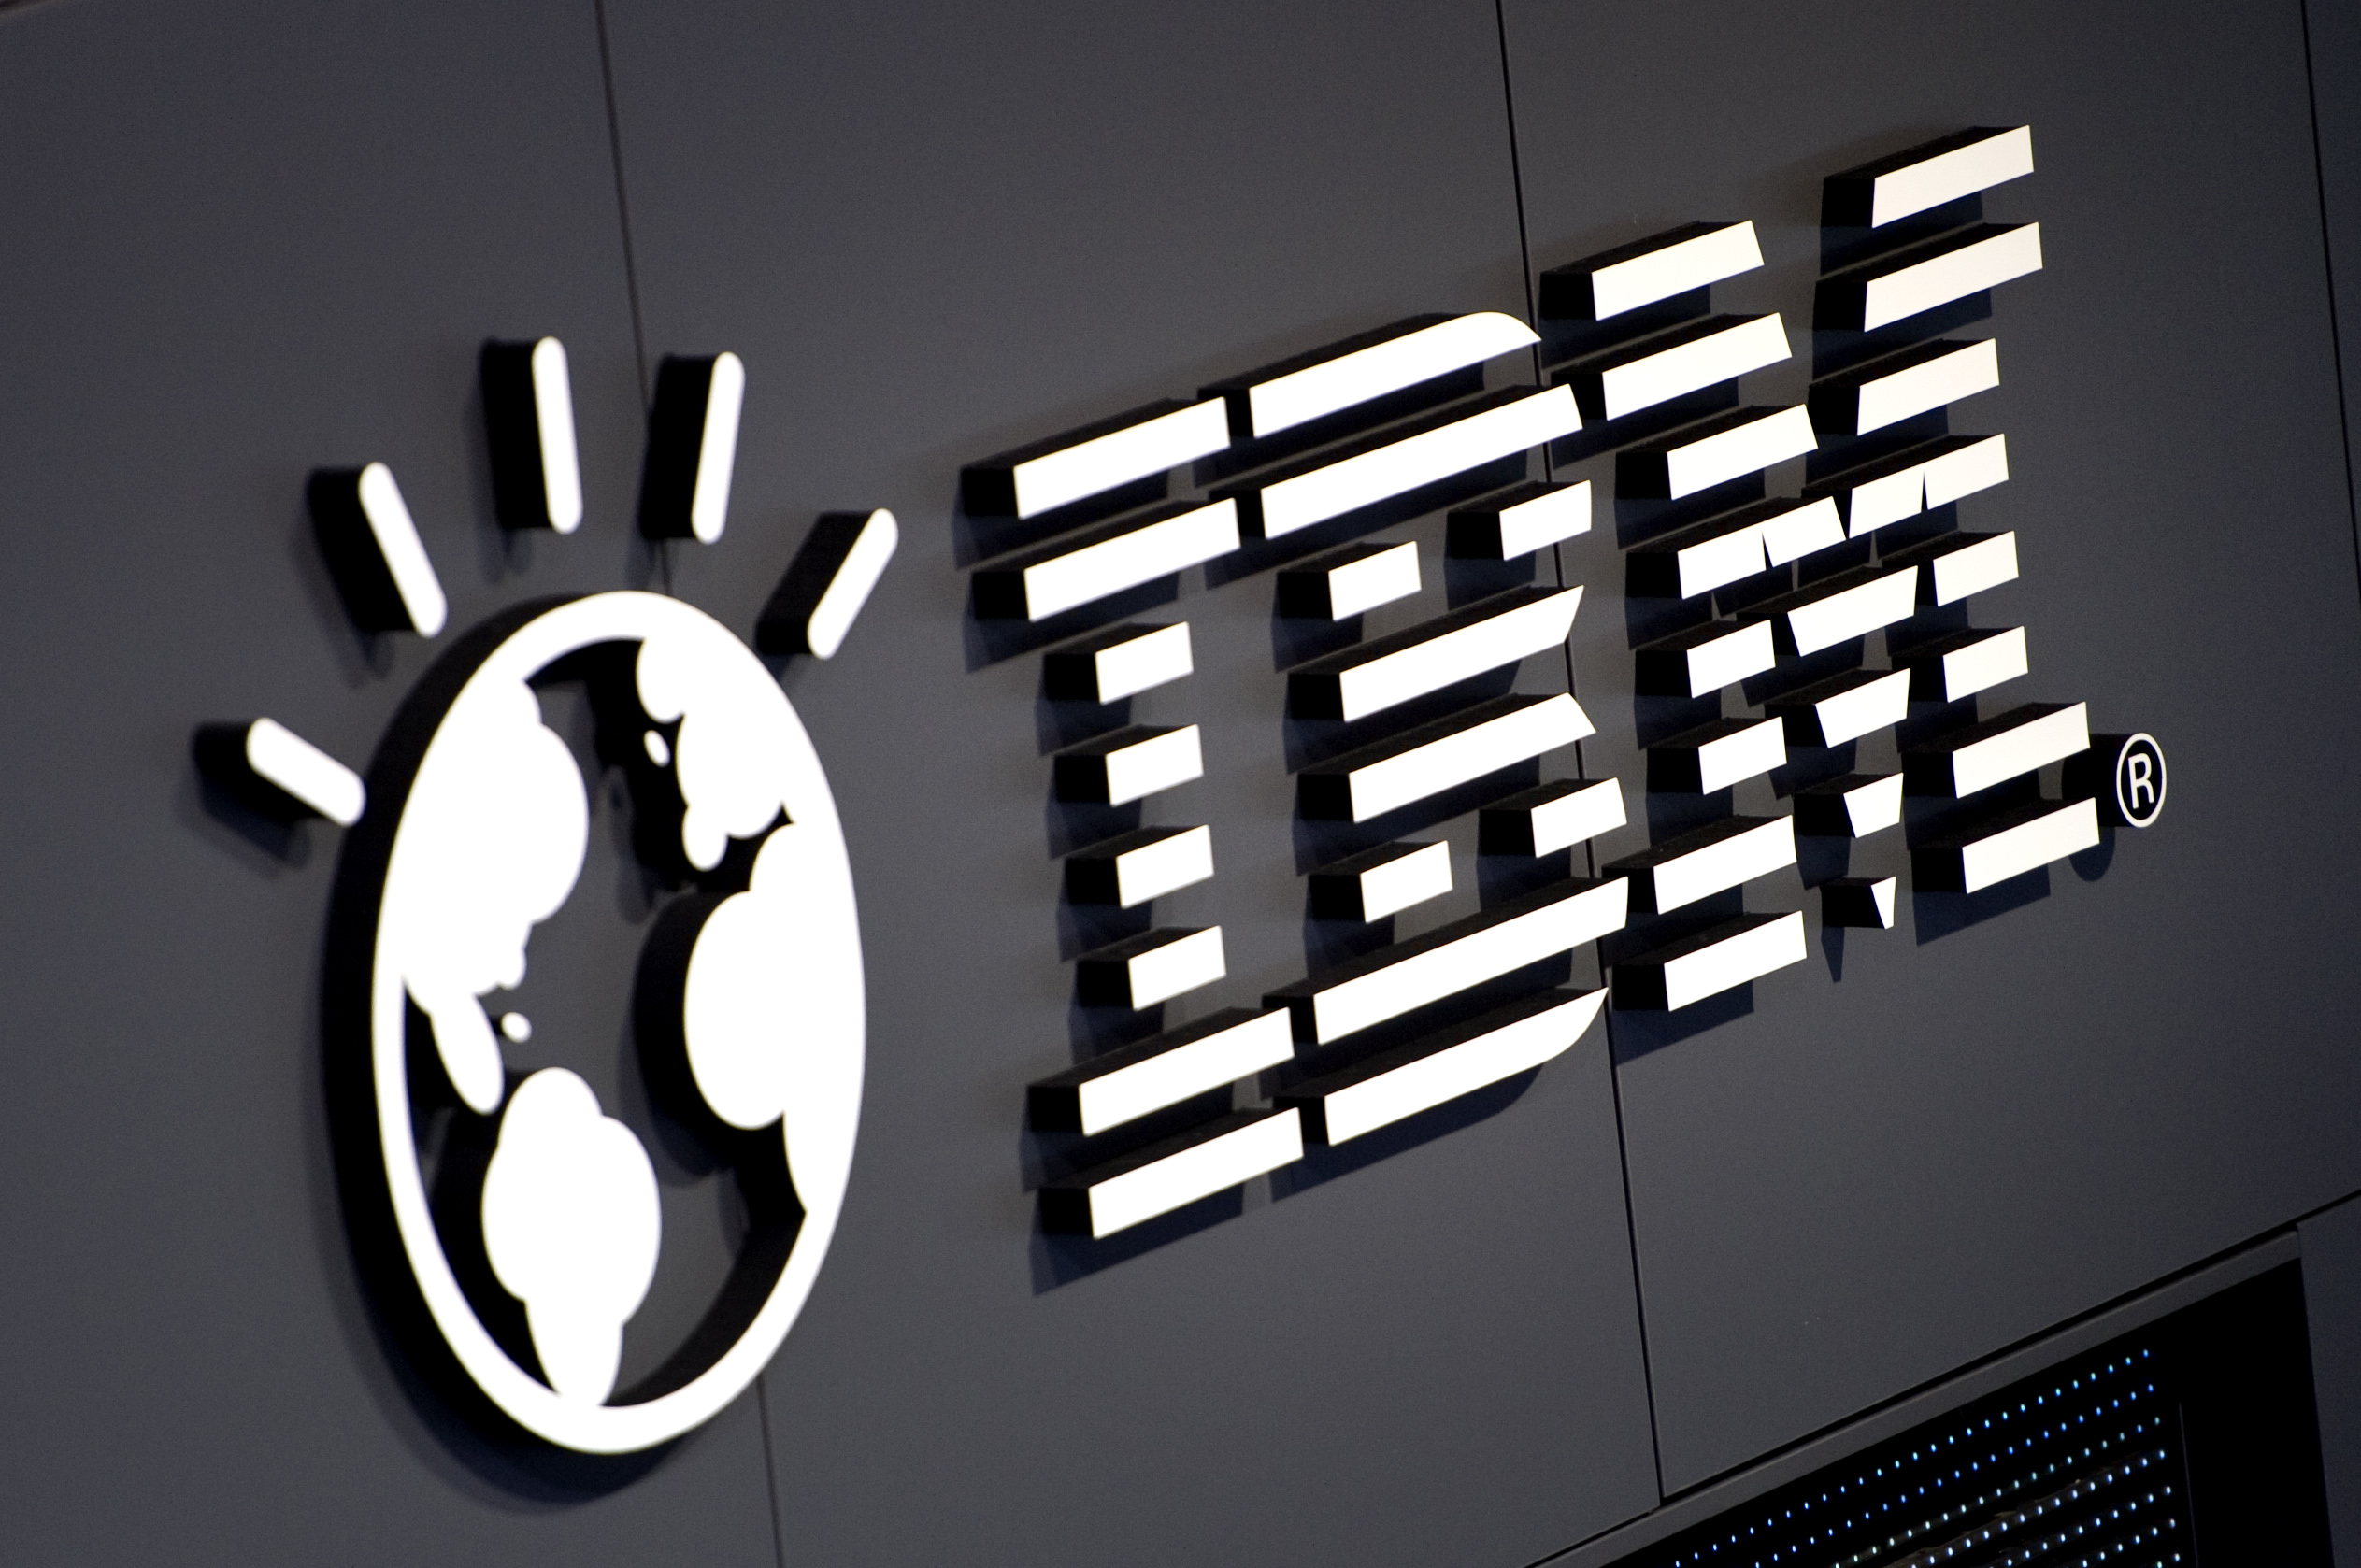 The logo of IBM is seen at their booth prior to the opening of the CeBIT IT fair on March 5, 2012 in Hanover, central Germany.